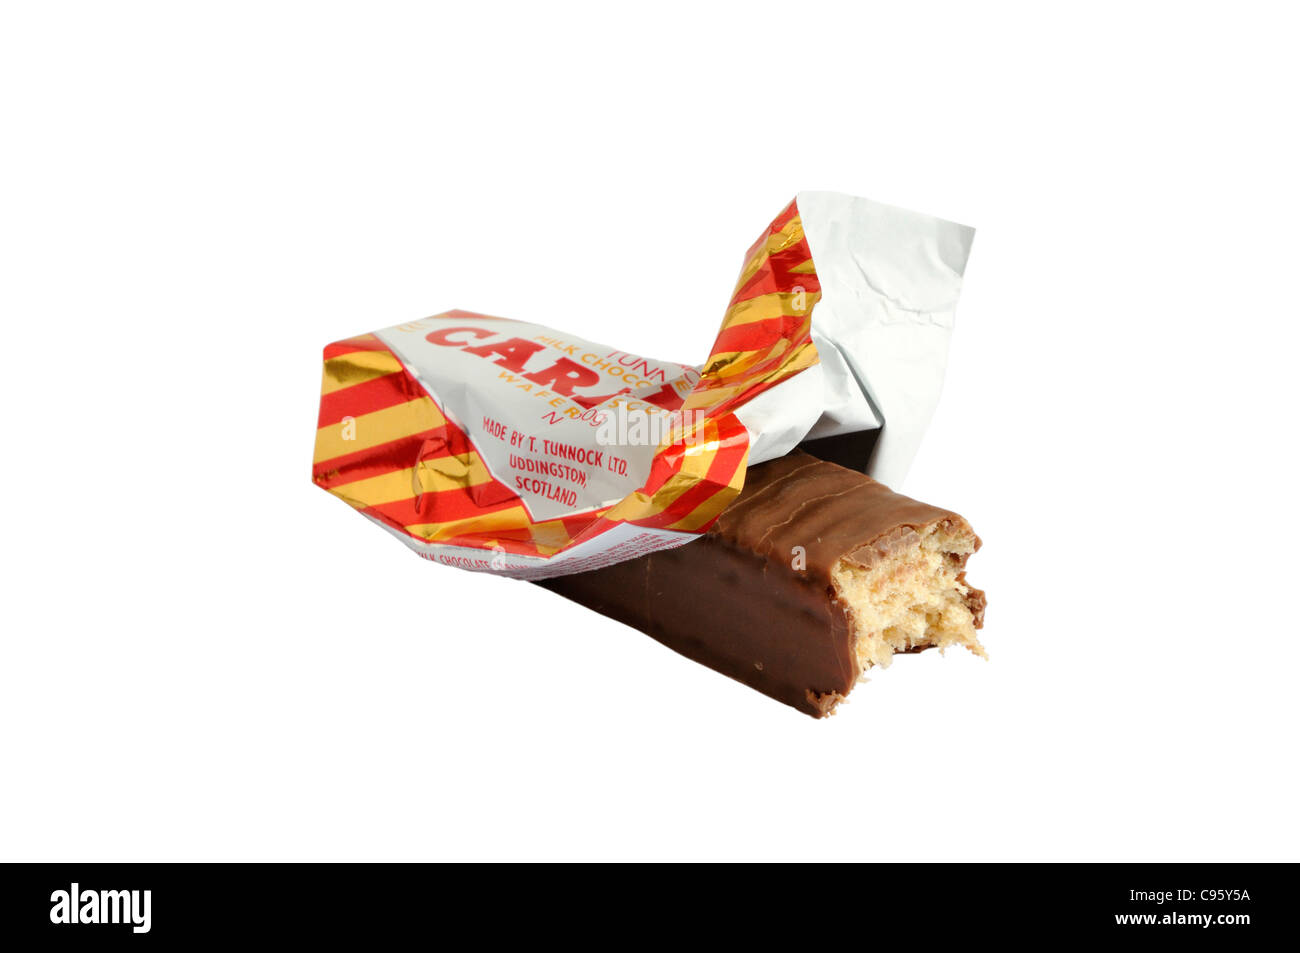 A bite off a Tunnock's caramel wafer biscuit - Stock Image